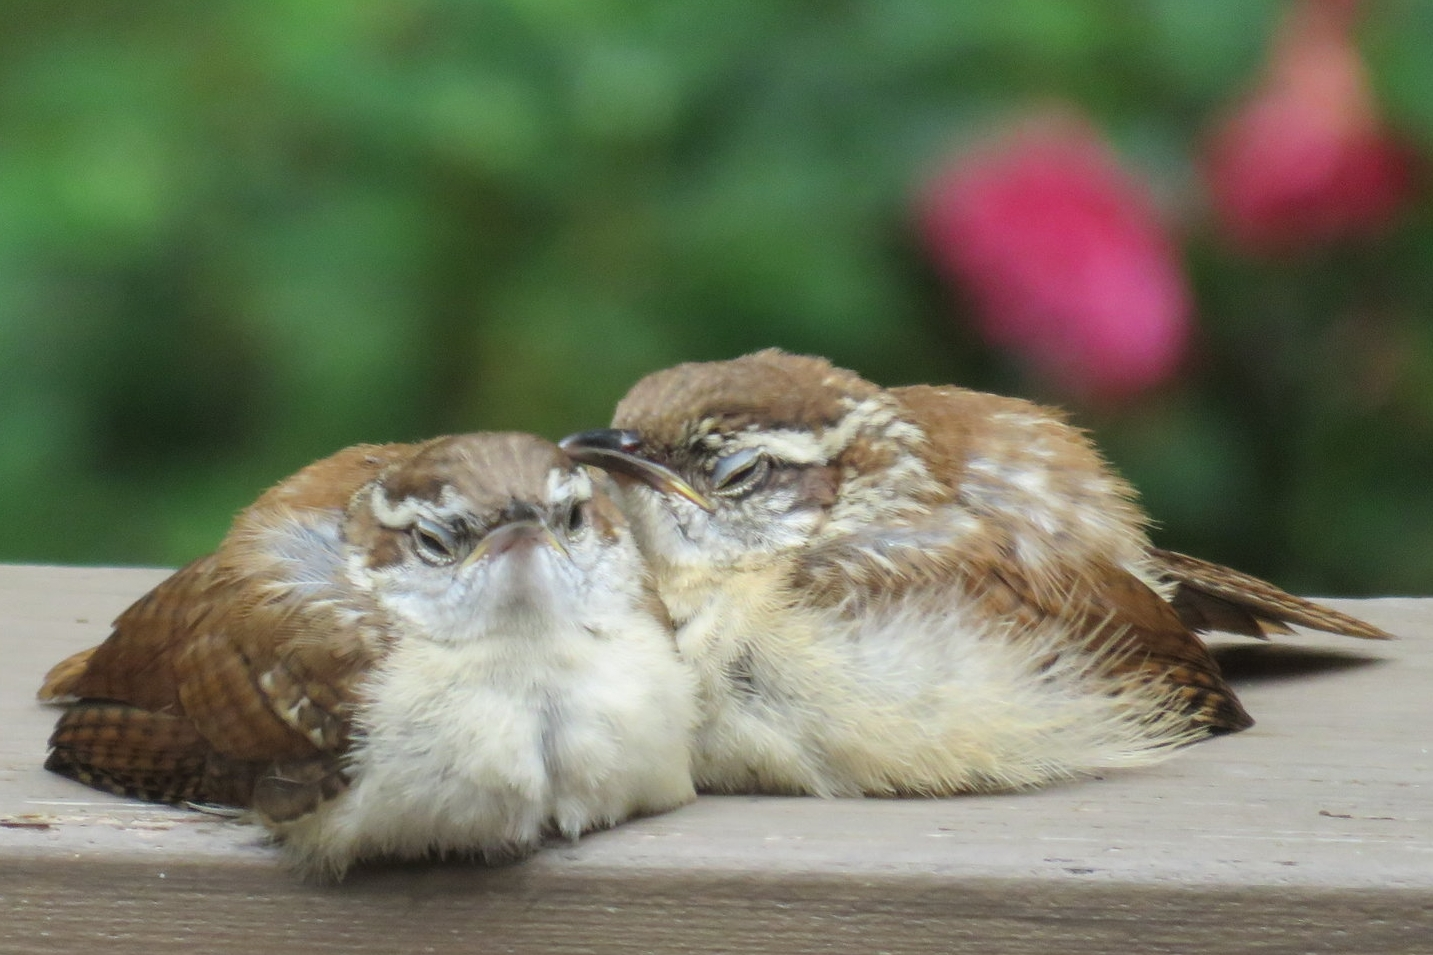 Wrens napping